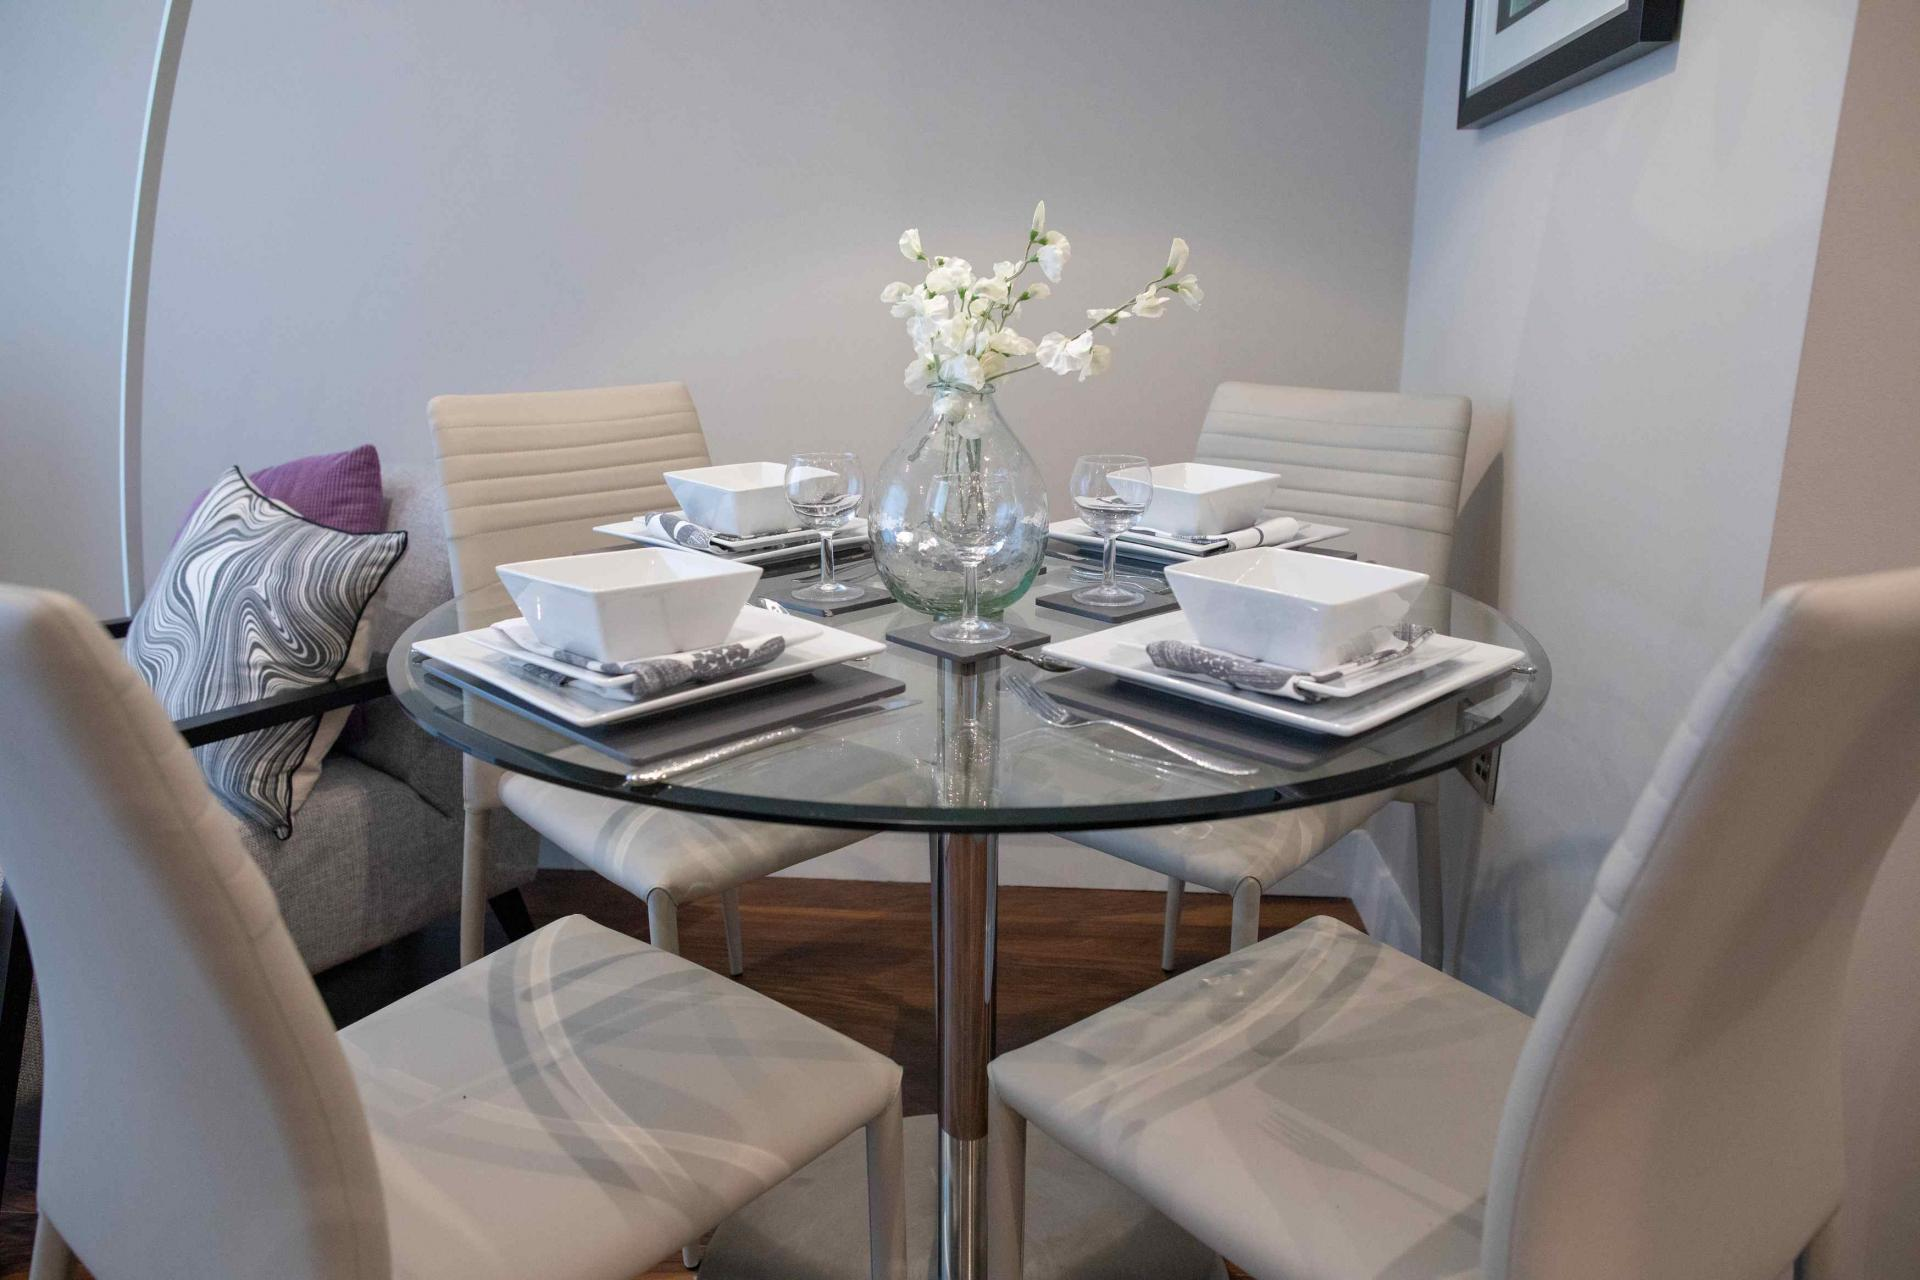 Table at Manchester Greengate Apartments